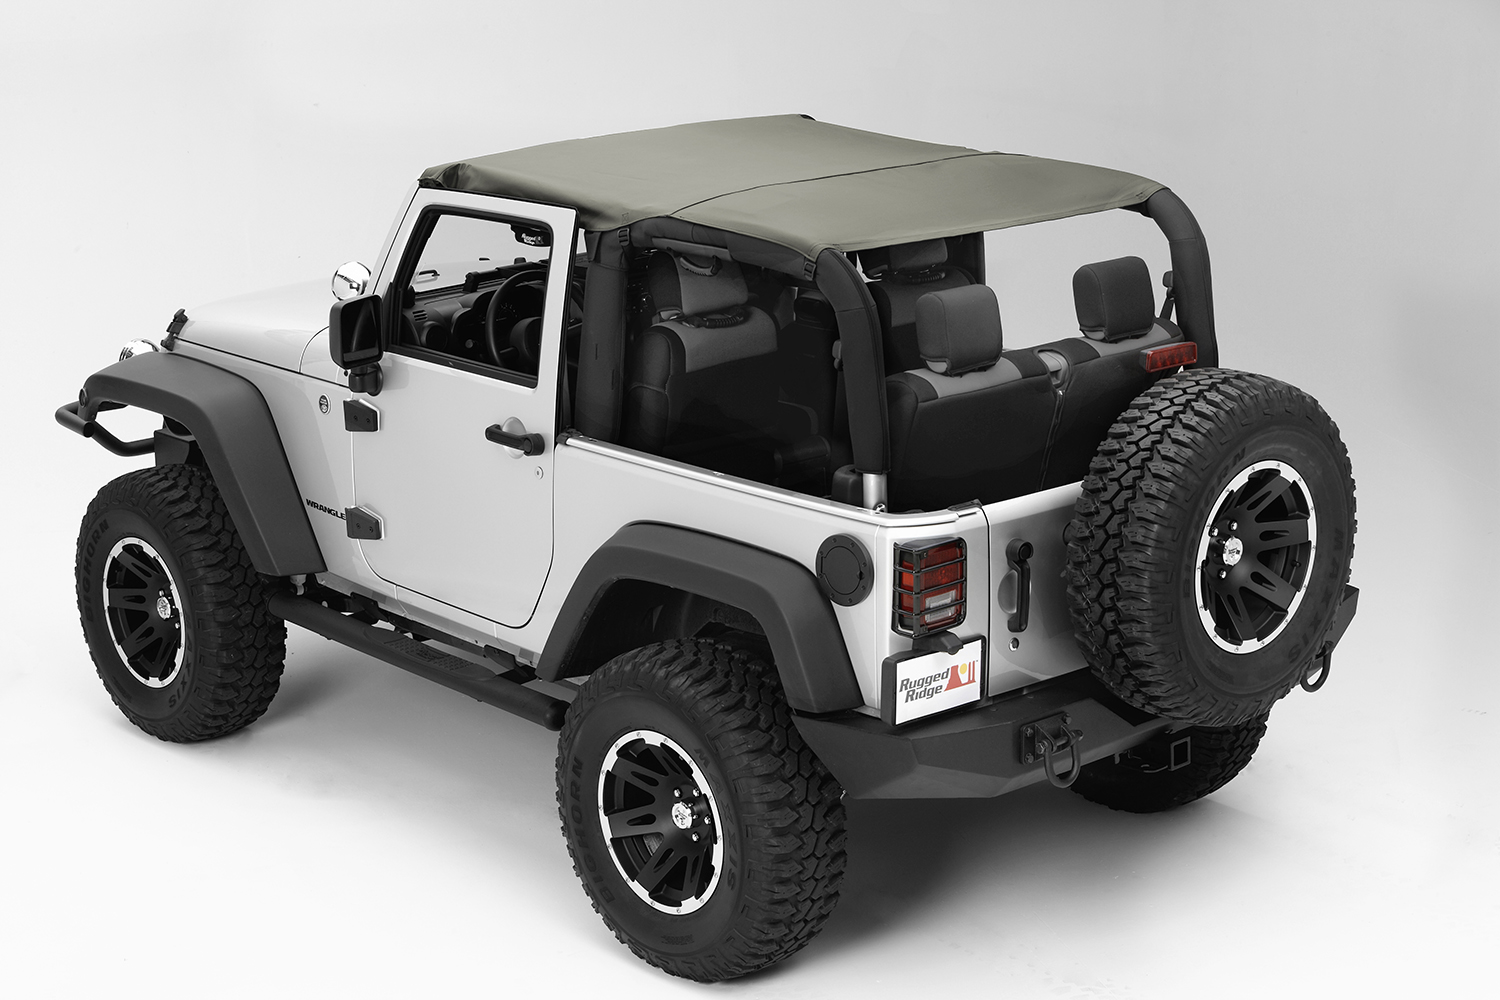 Rugged Ridge Pocket Island Topper Khaki Diamond  - JK 2dr 2010+